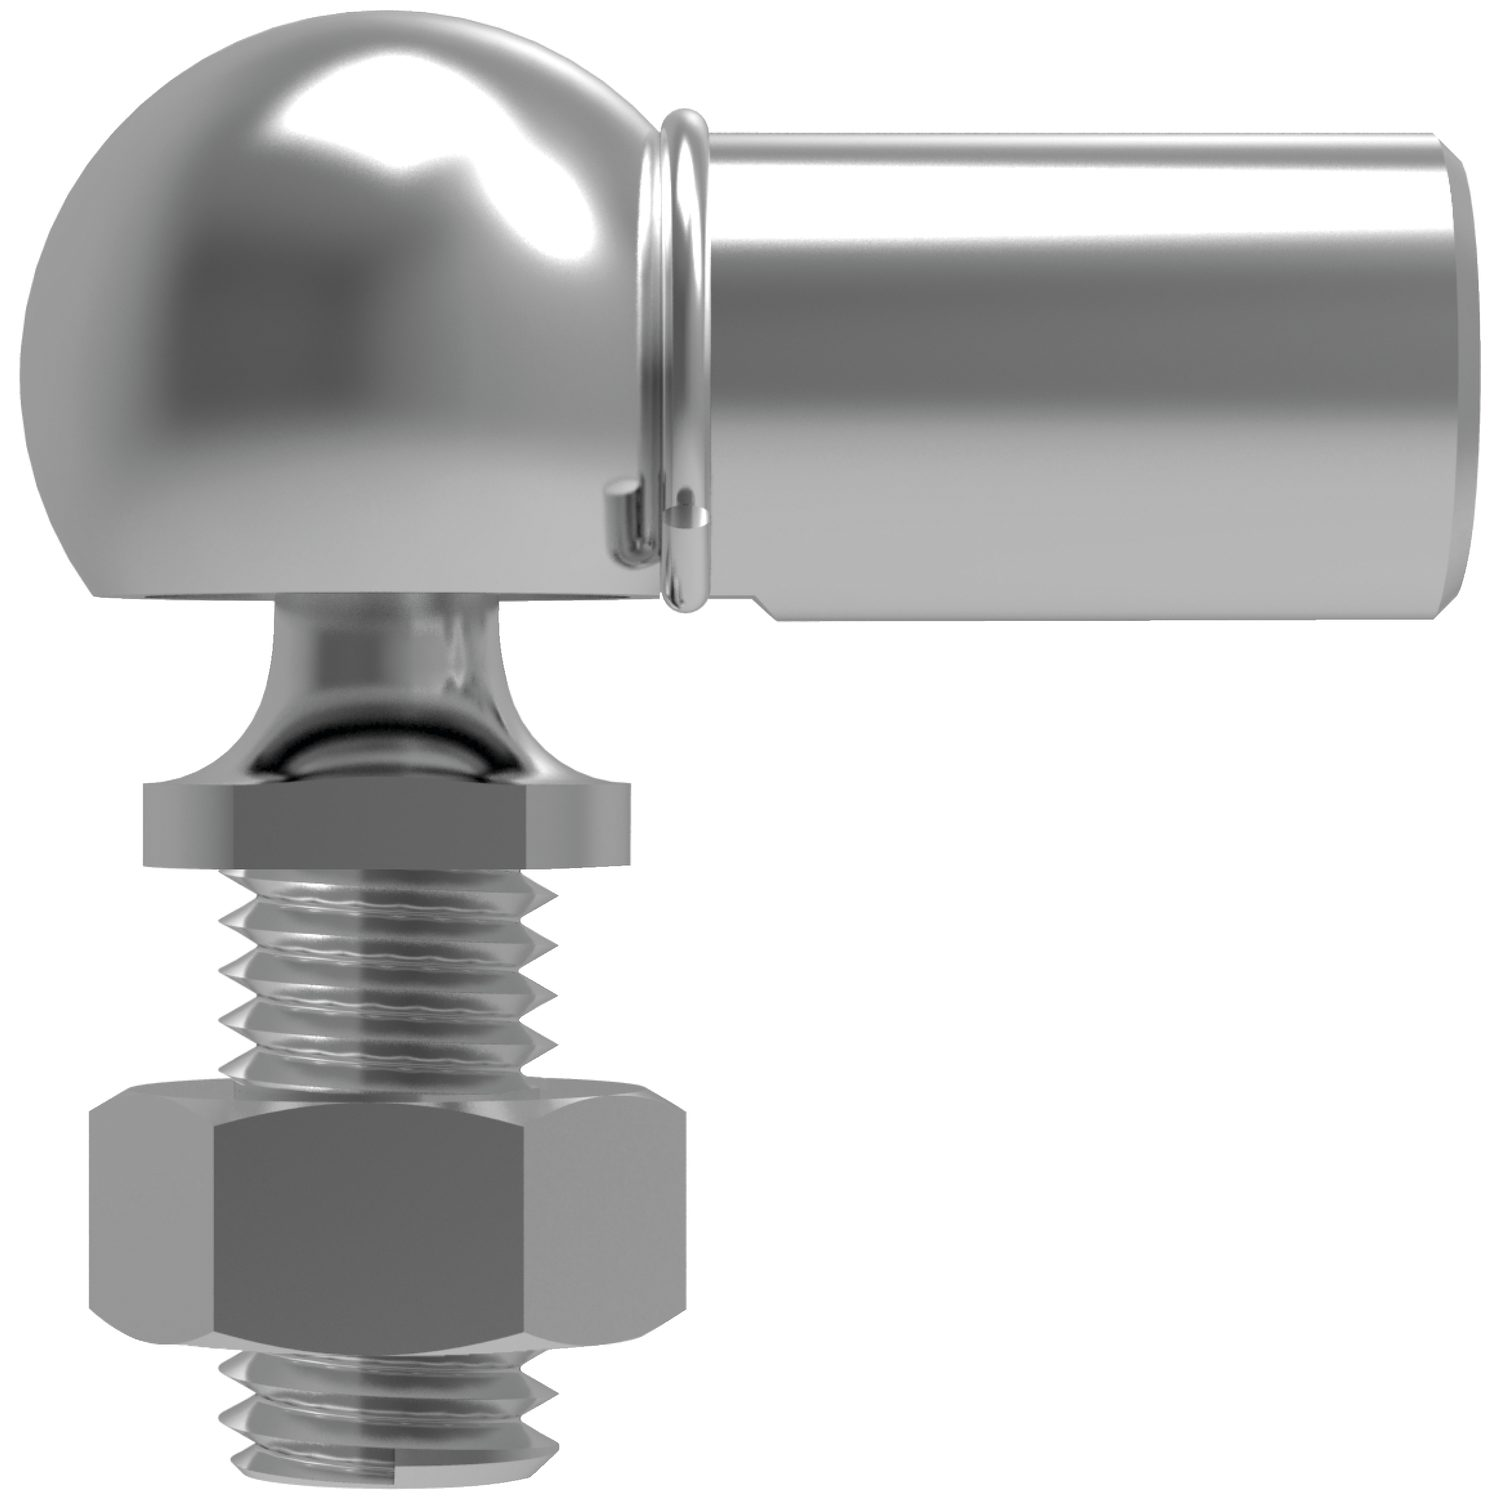 R3467 - Stainless Ball and Socket Joints